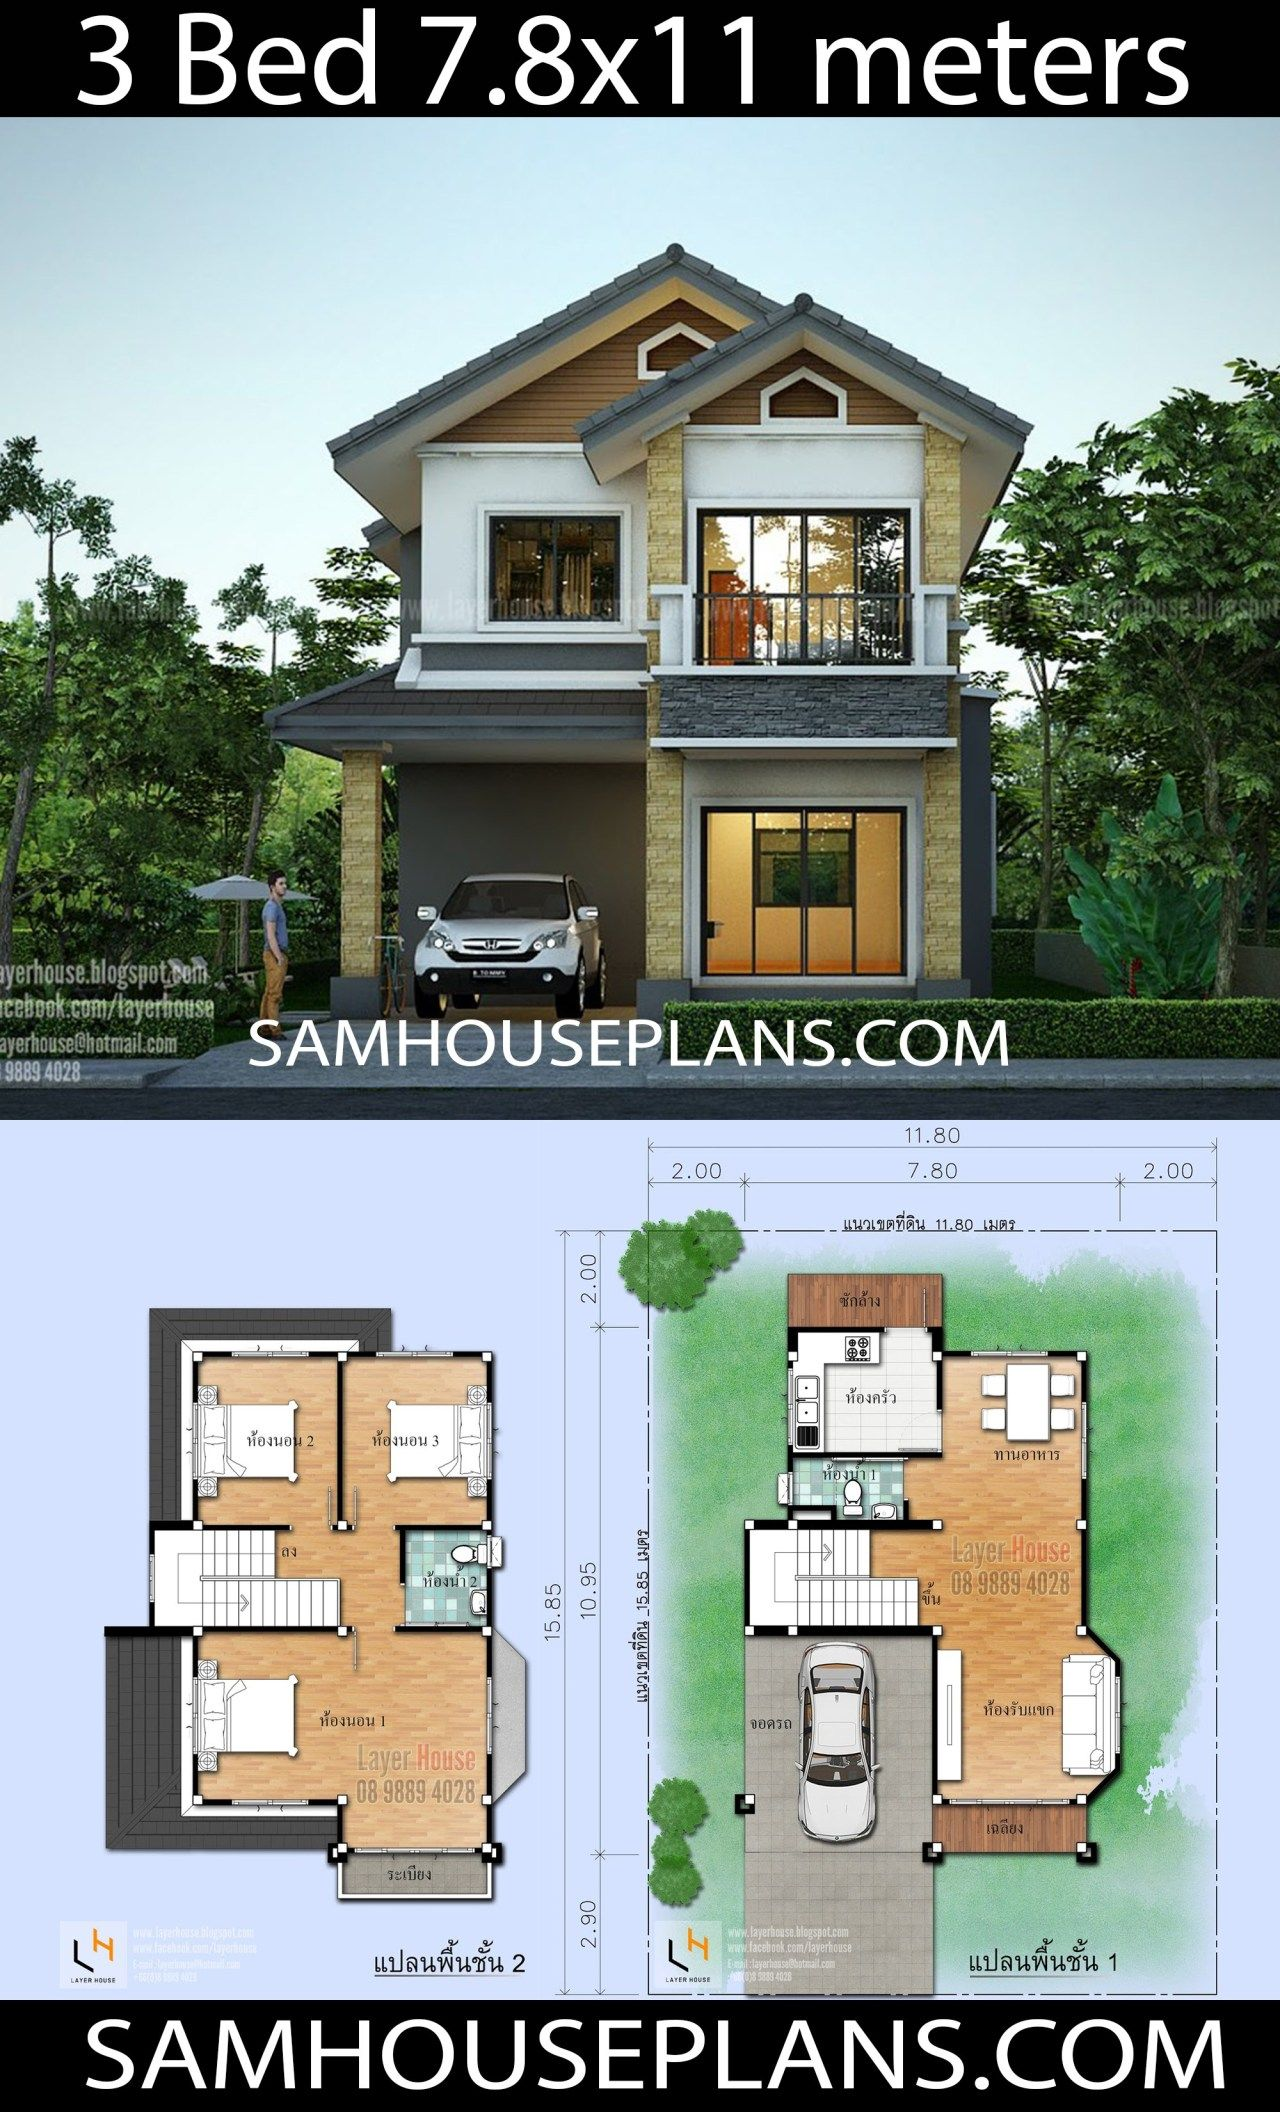 House Plans Idea 7 8x11 M With 3 Bedrooms Sam House Plans House Construction Plan Family House Plans Architectural House Plans